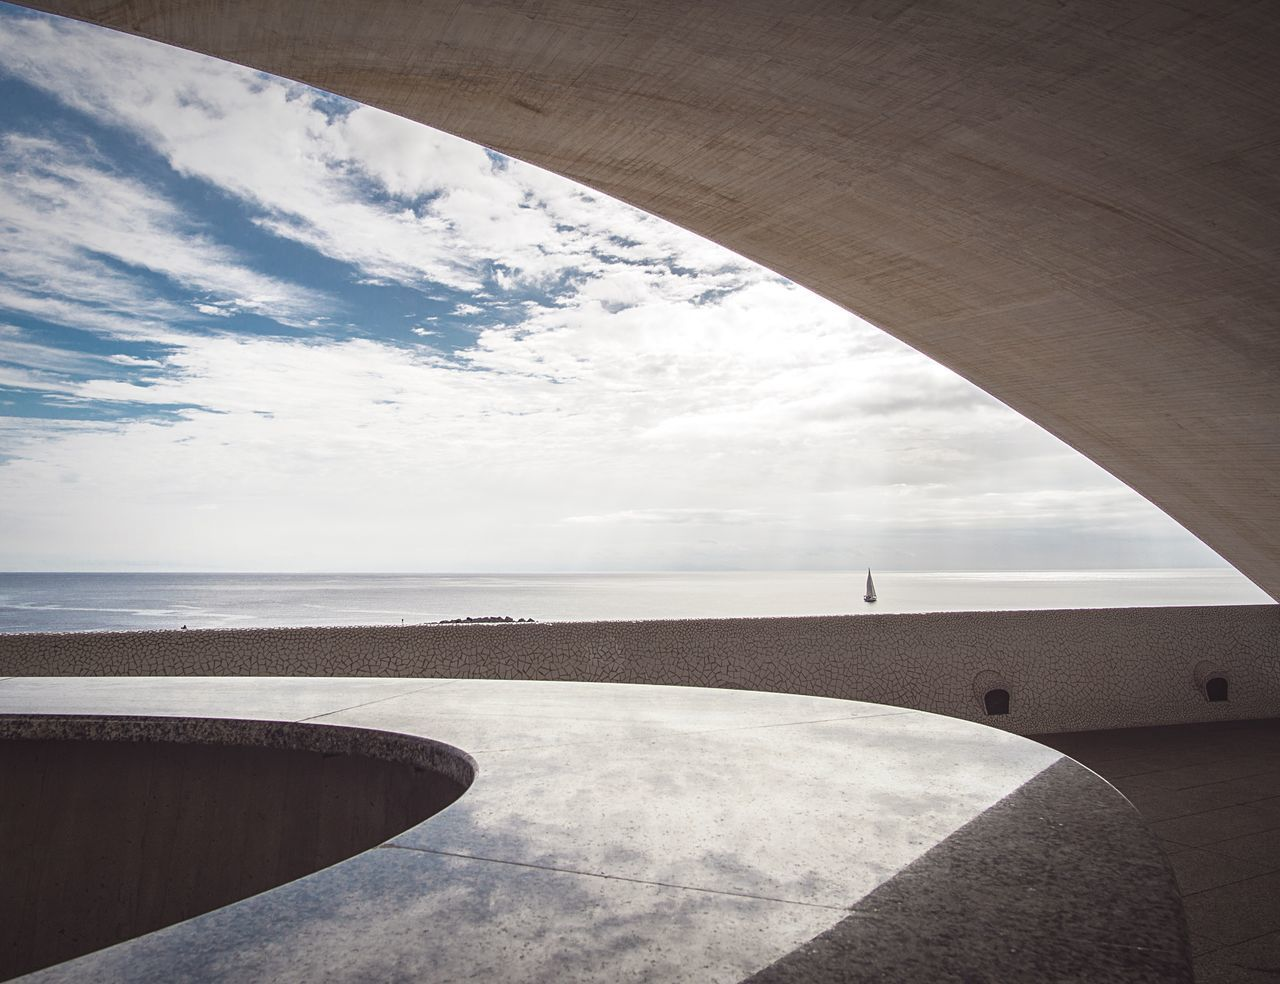 Sailing Architecture Sea Horizon Over Water Water Sky No People Cloud - Sky Outdoors Scenics Beach Day Architecture Nature Curves Geometry Geometric Shape Shapes Tenerife Teneriffa Santa Cruz De Tenerife Auditorium